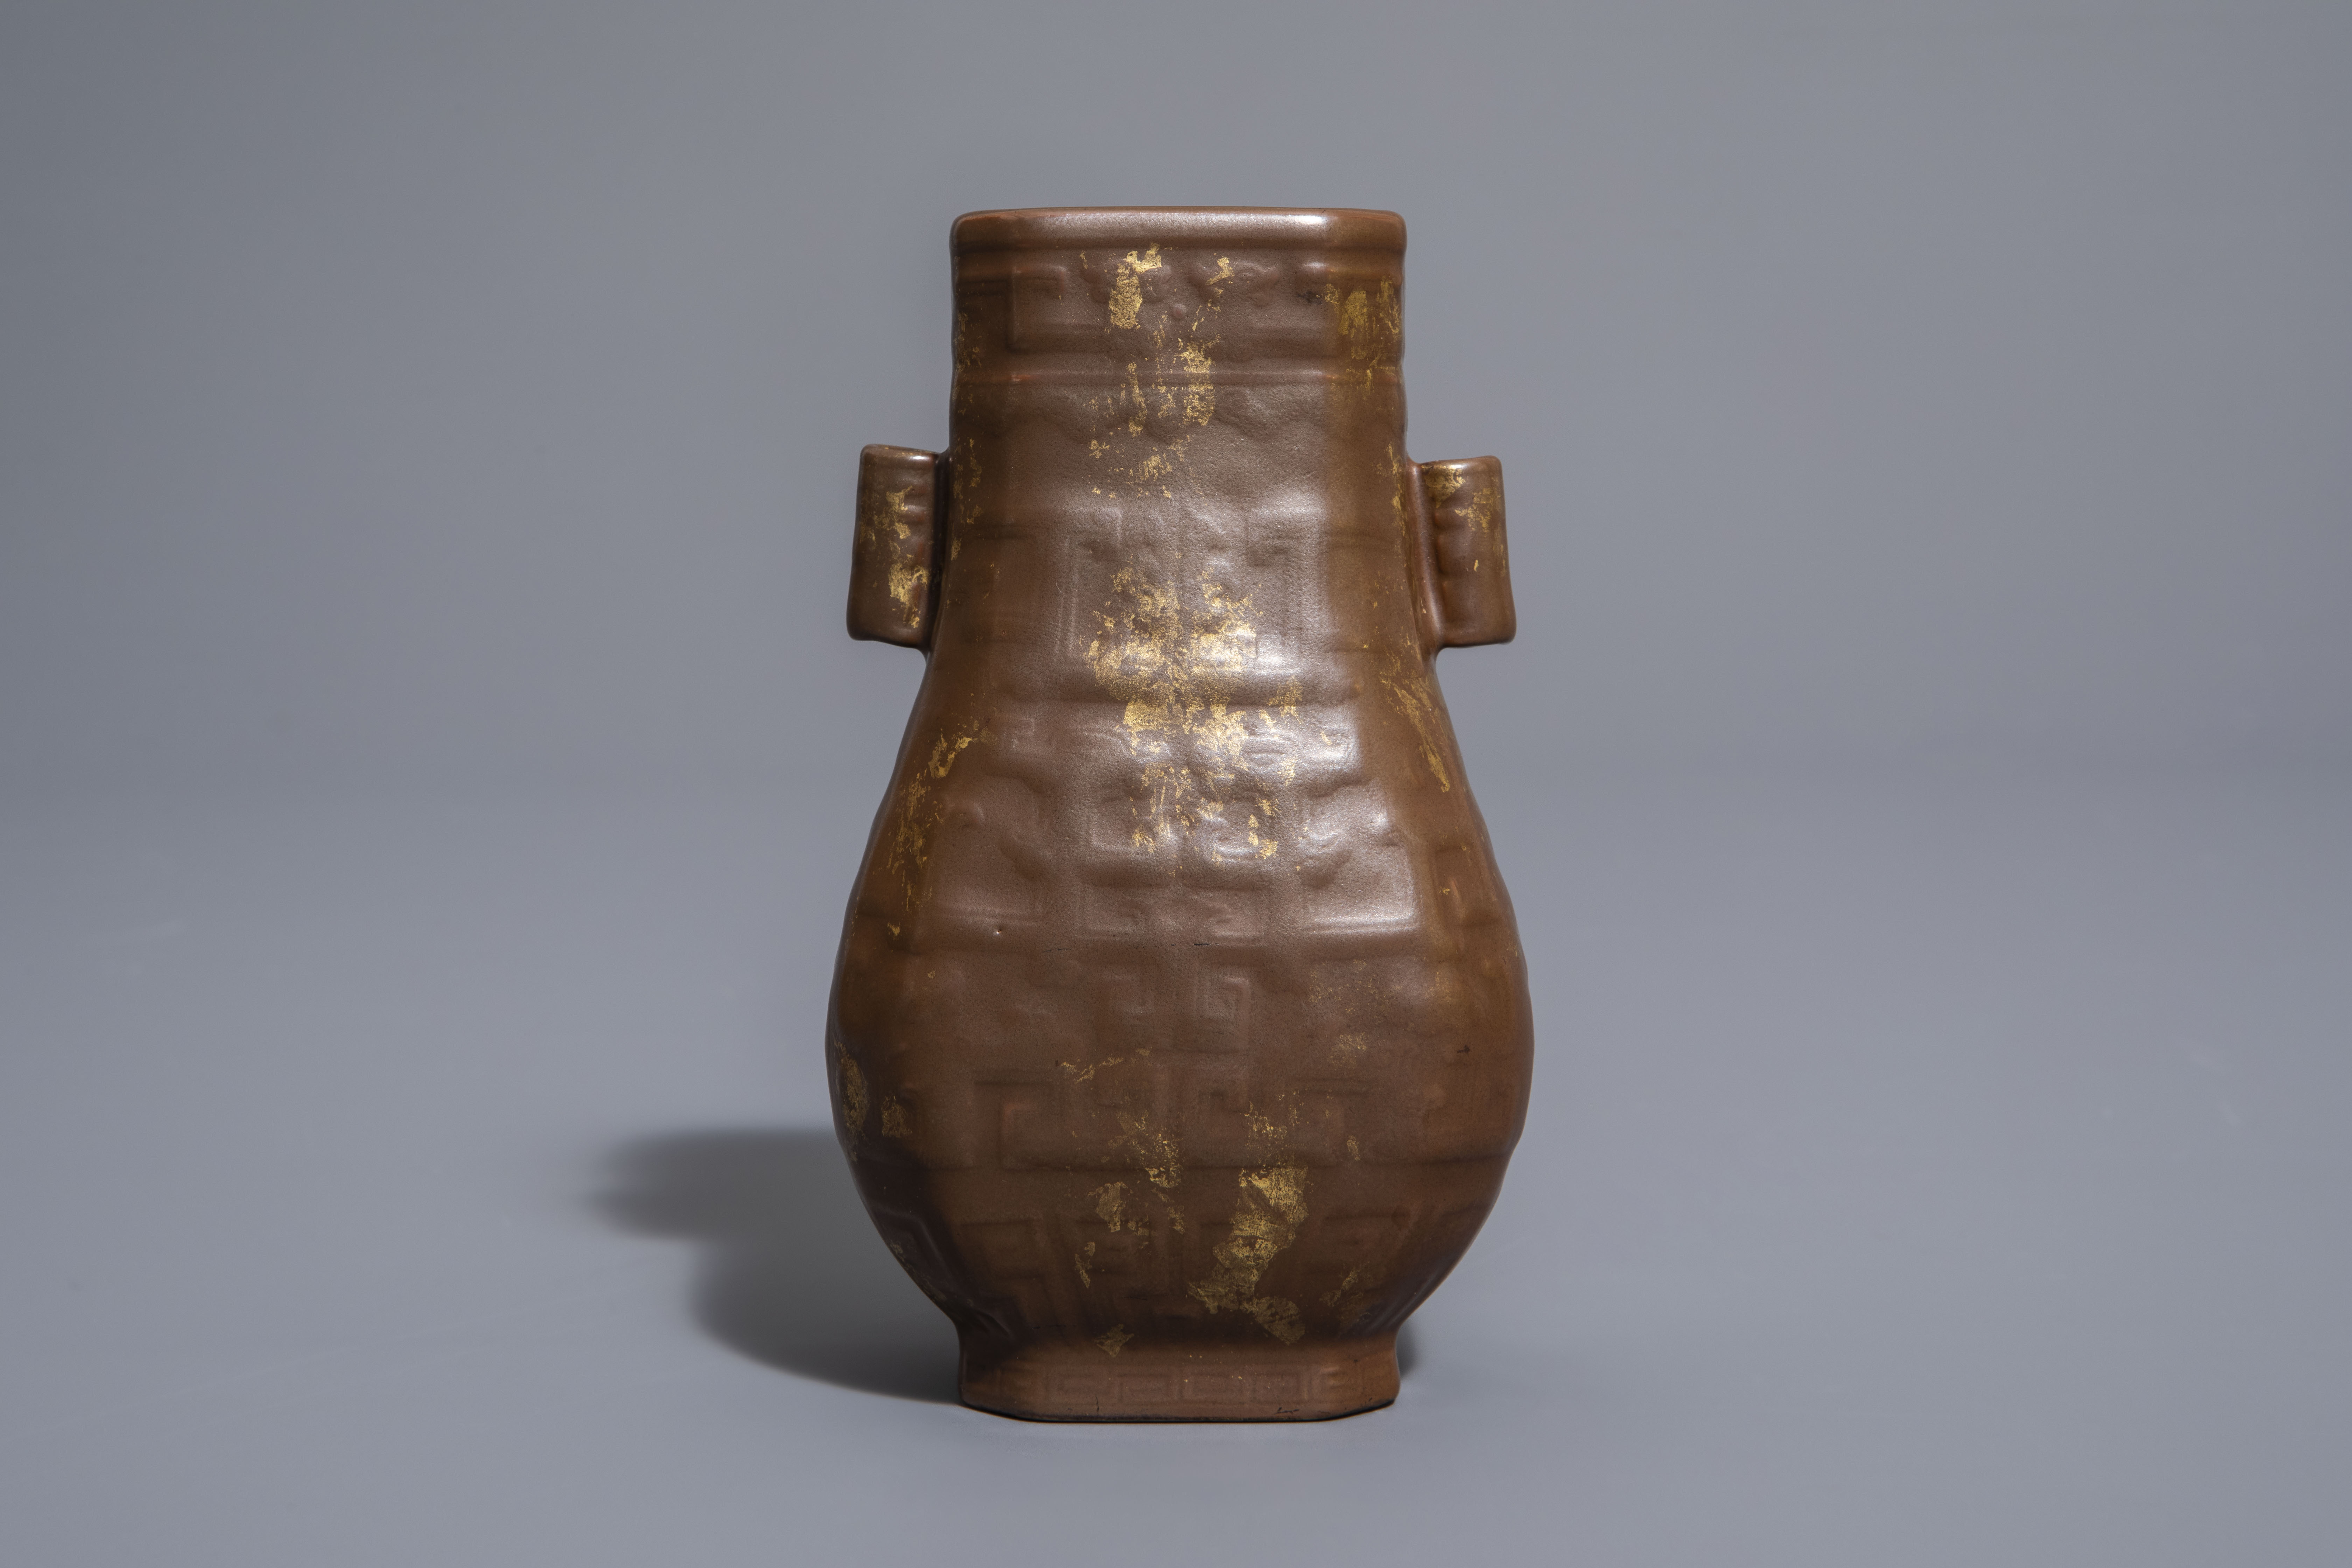 A Chinese porcelain faux-gilt-splashed-bronze vase, Qianlong mark, 19th/20th C. - Image 3 of 9